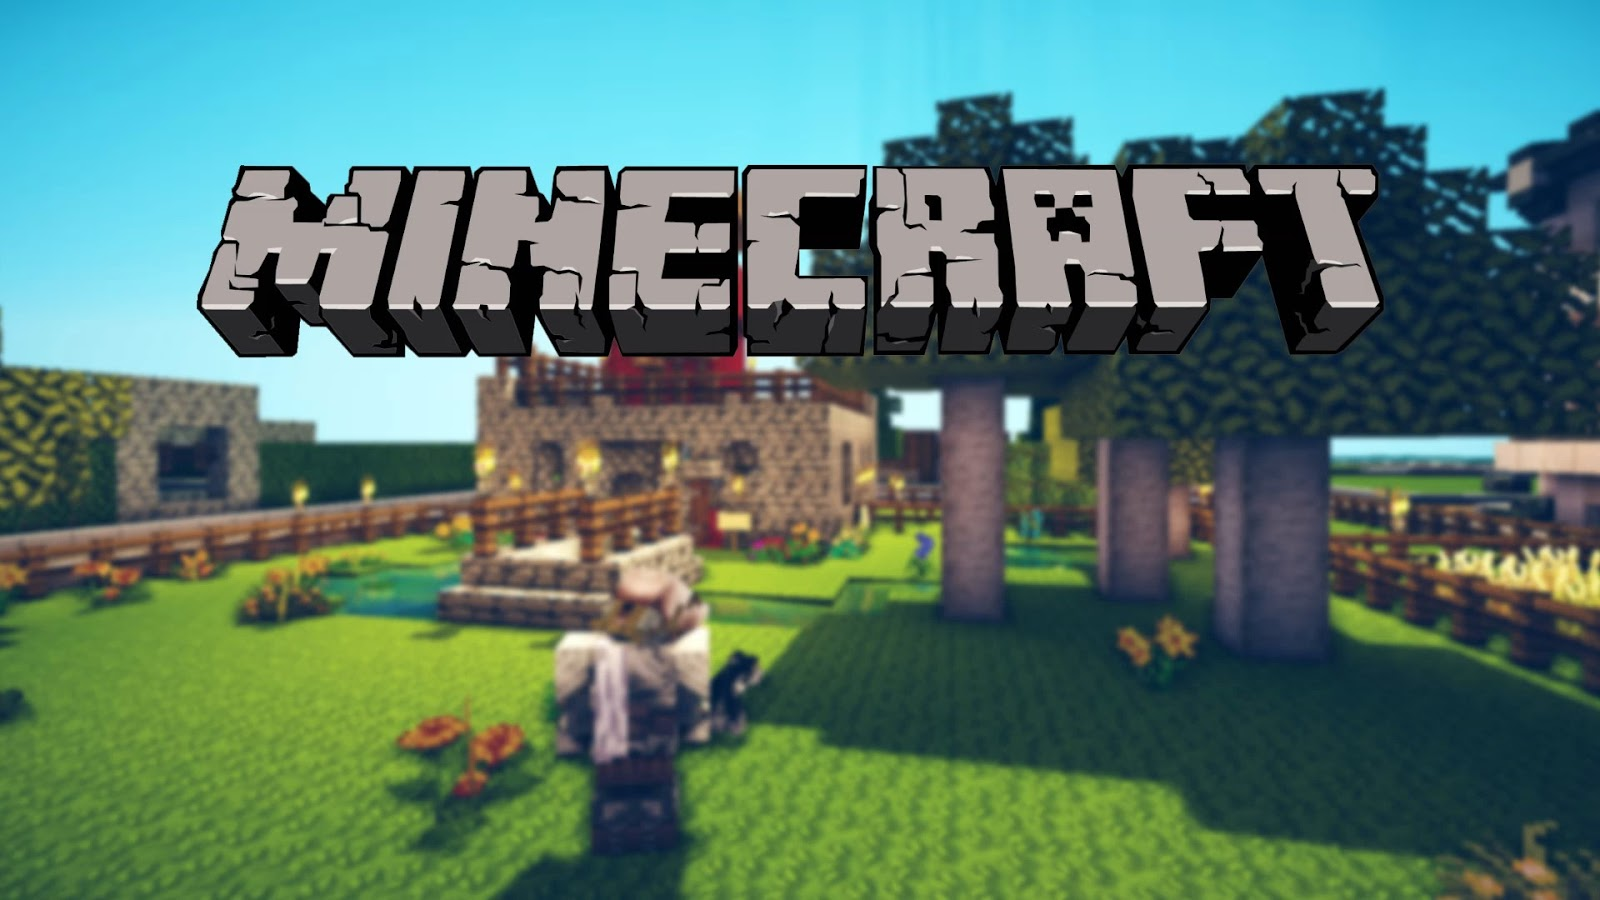 Download minecraft free premium account.